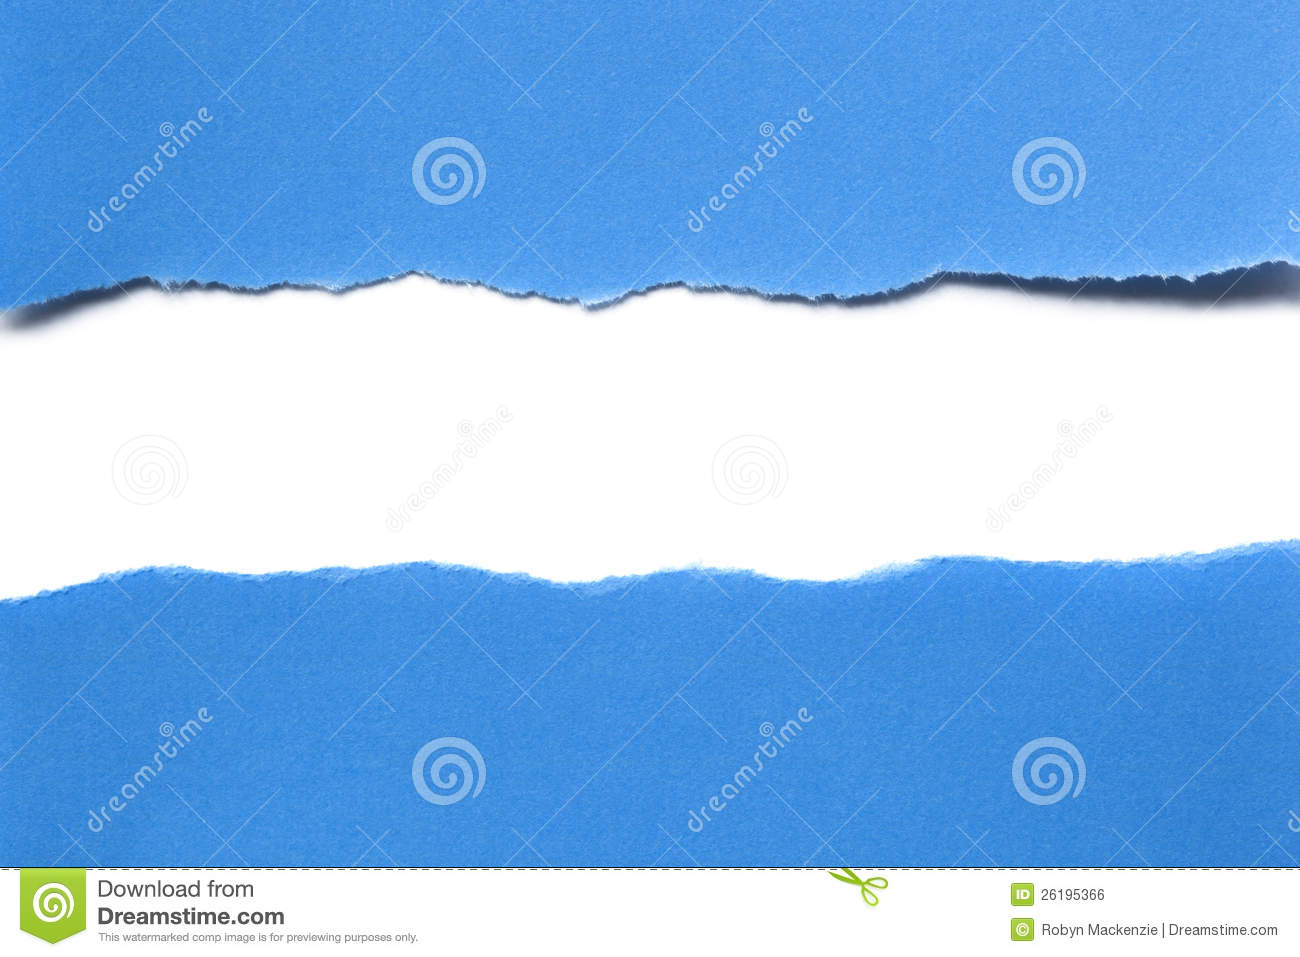 Cute Rose Wallpaper Free Download Torn Blue Paper With White Strip Royalty Free Stock Image